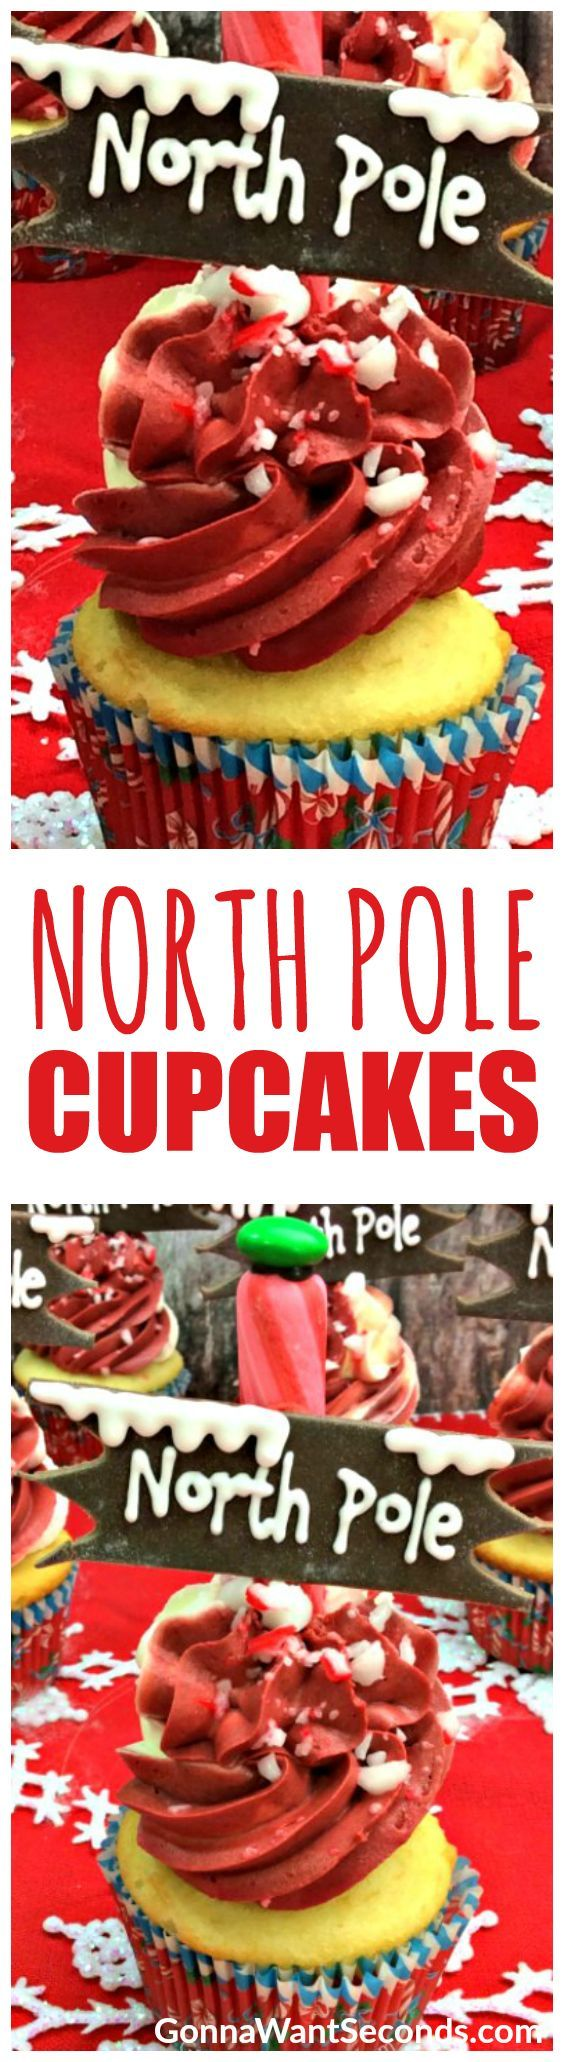 These charming, cheery North Pole Cupcakes are probably the first thing Santa eats to restore his energy after a long Christmas Eve. A fancy, flavorful cupcake supports a giant, snowy drift of peppermint frosting with a cute little sign directing everyone to the place where all the magic happens!